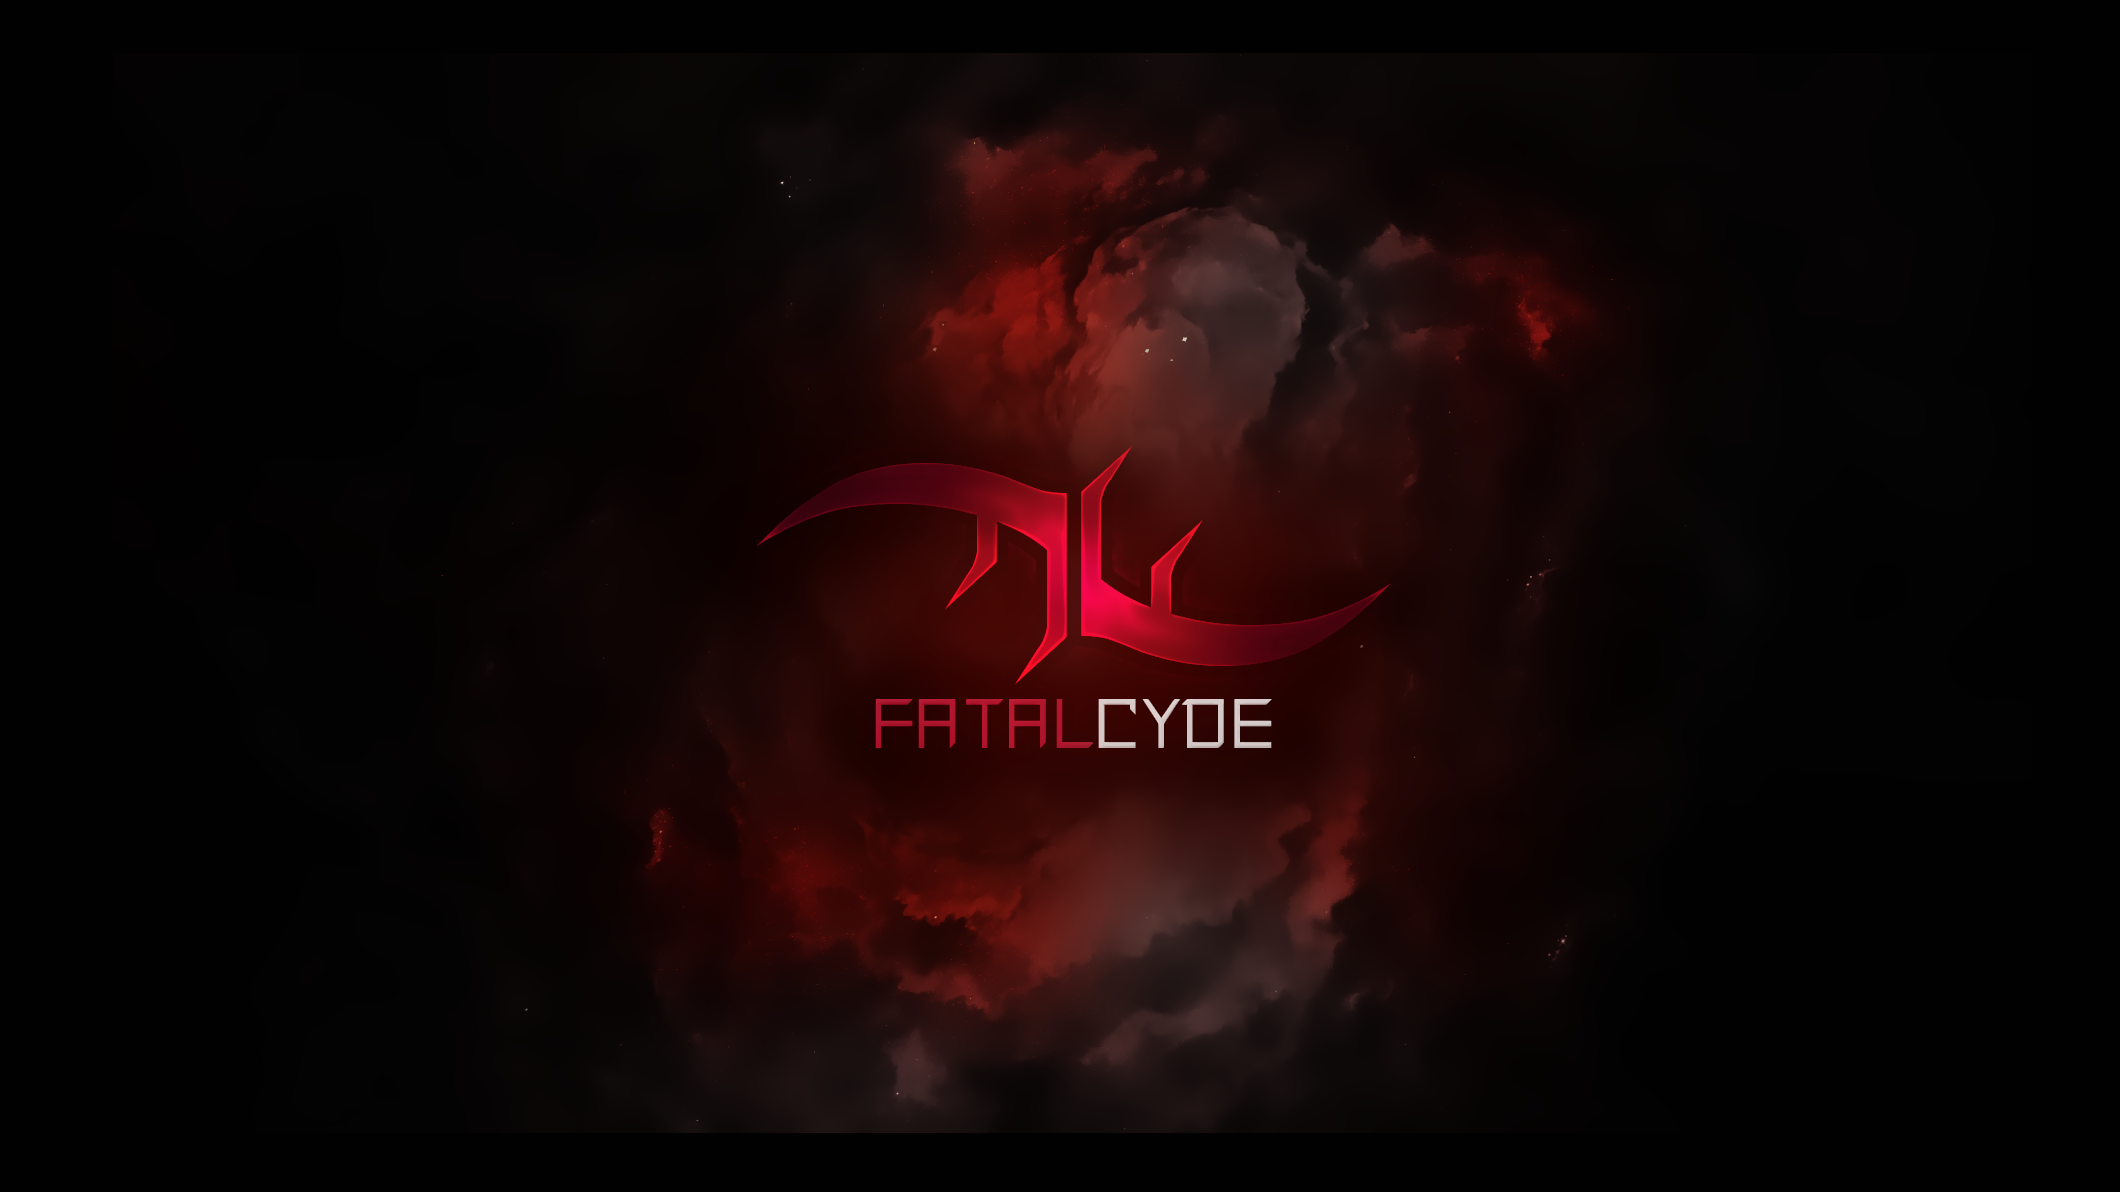 Fatalcyde Wallpaper_3258